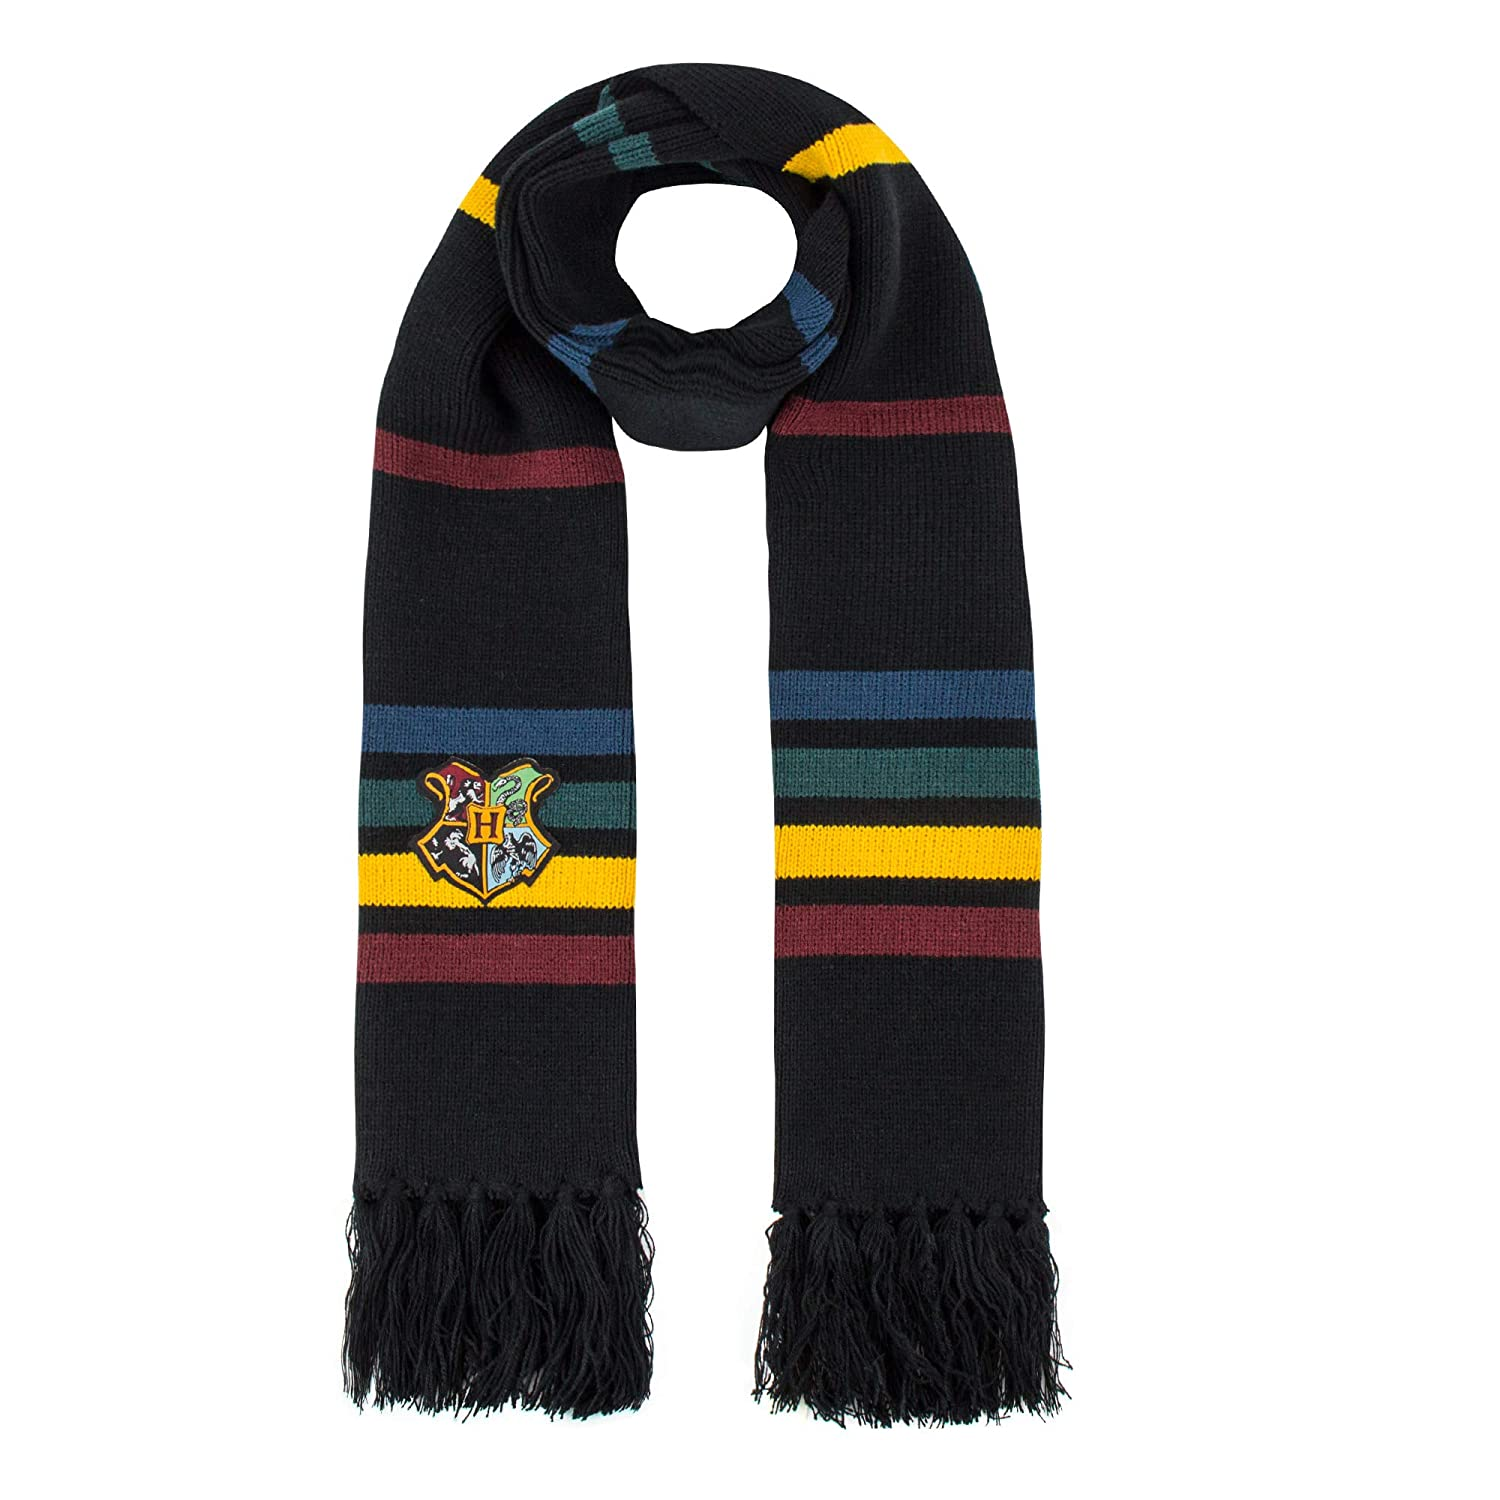 Harry Potter Scarf - Official - Ultra Soft Knitted Fabric - by Cinereplicas Gryffindor Purple